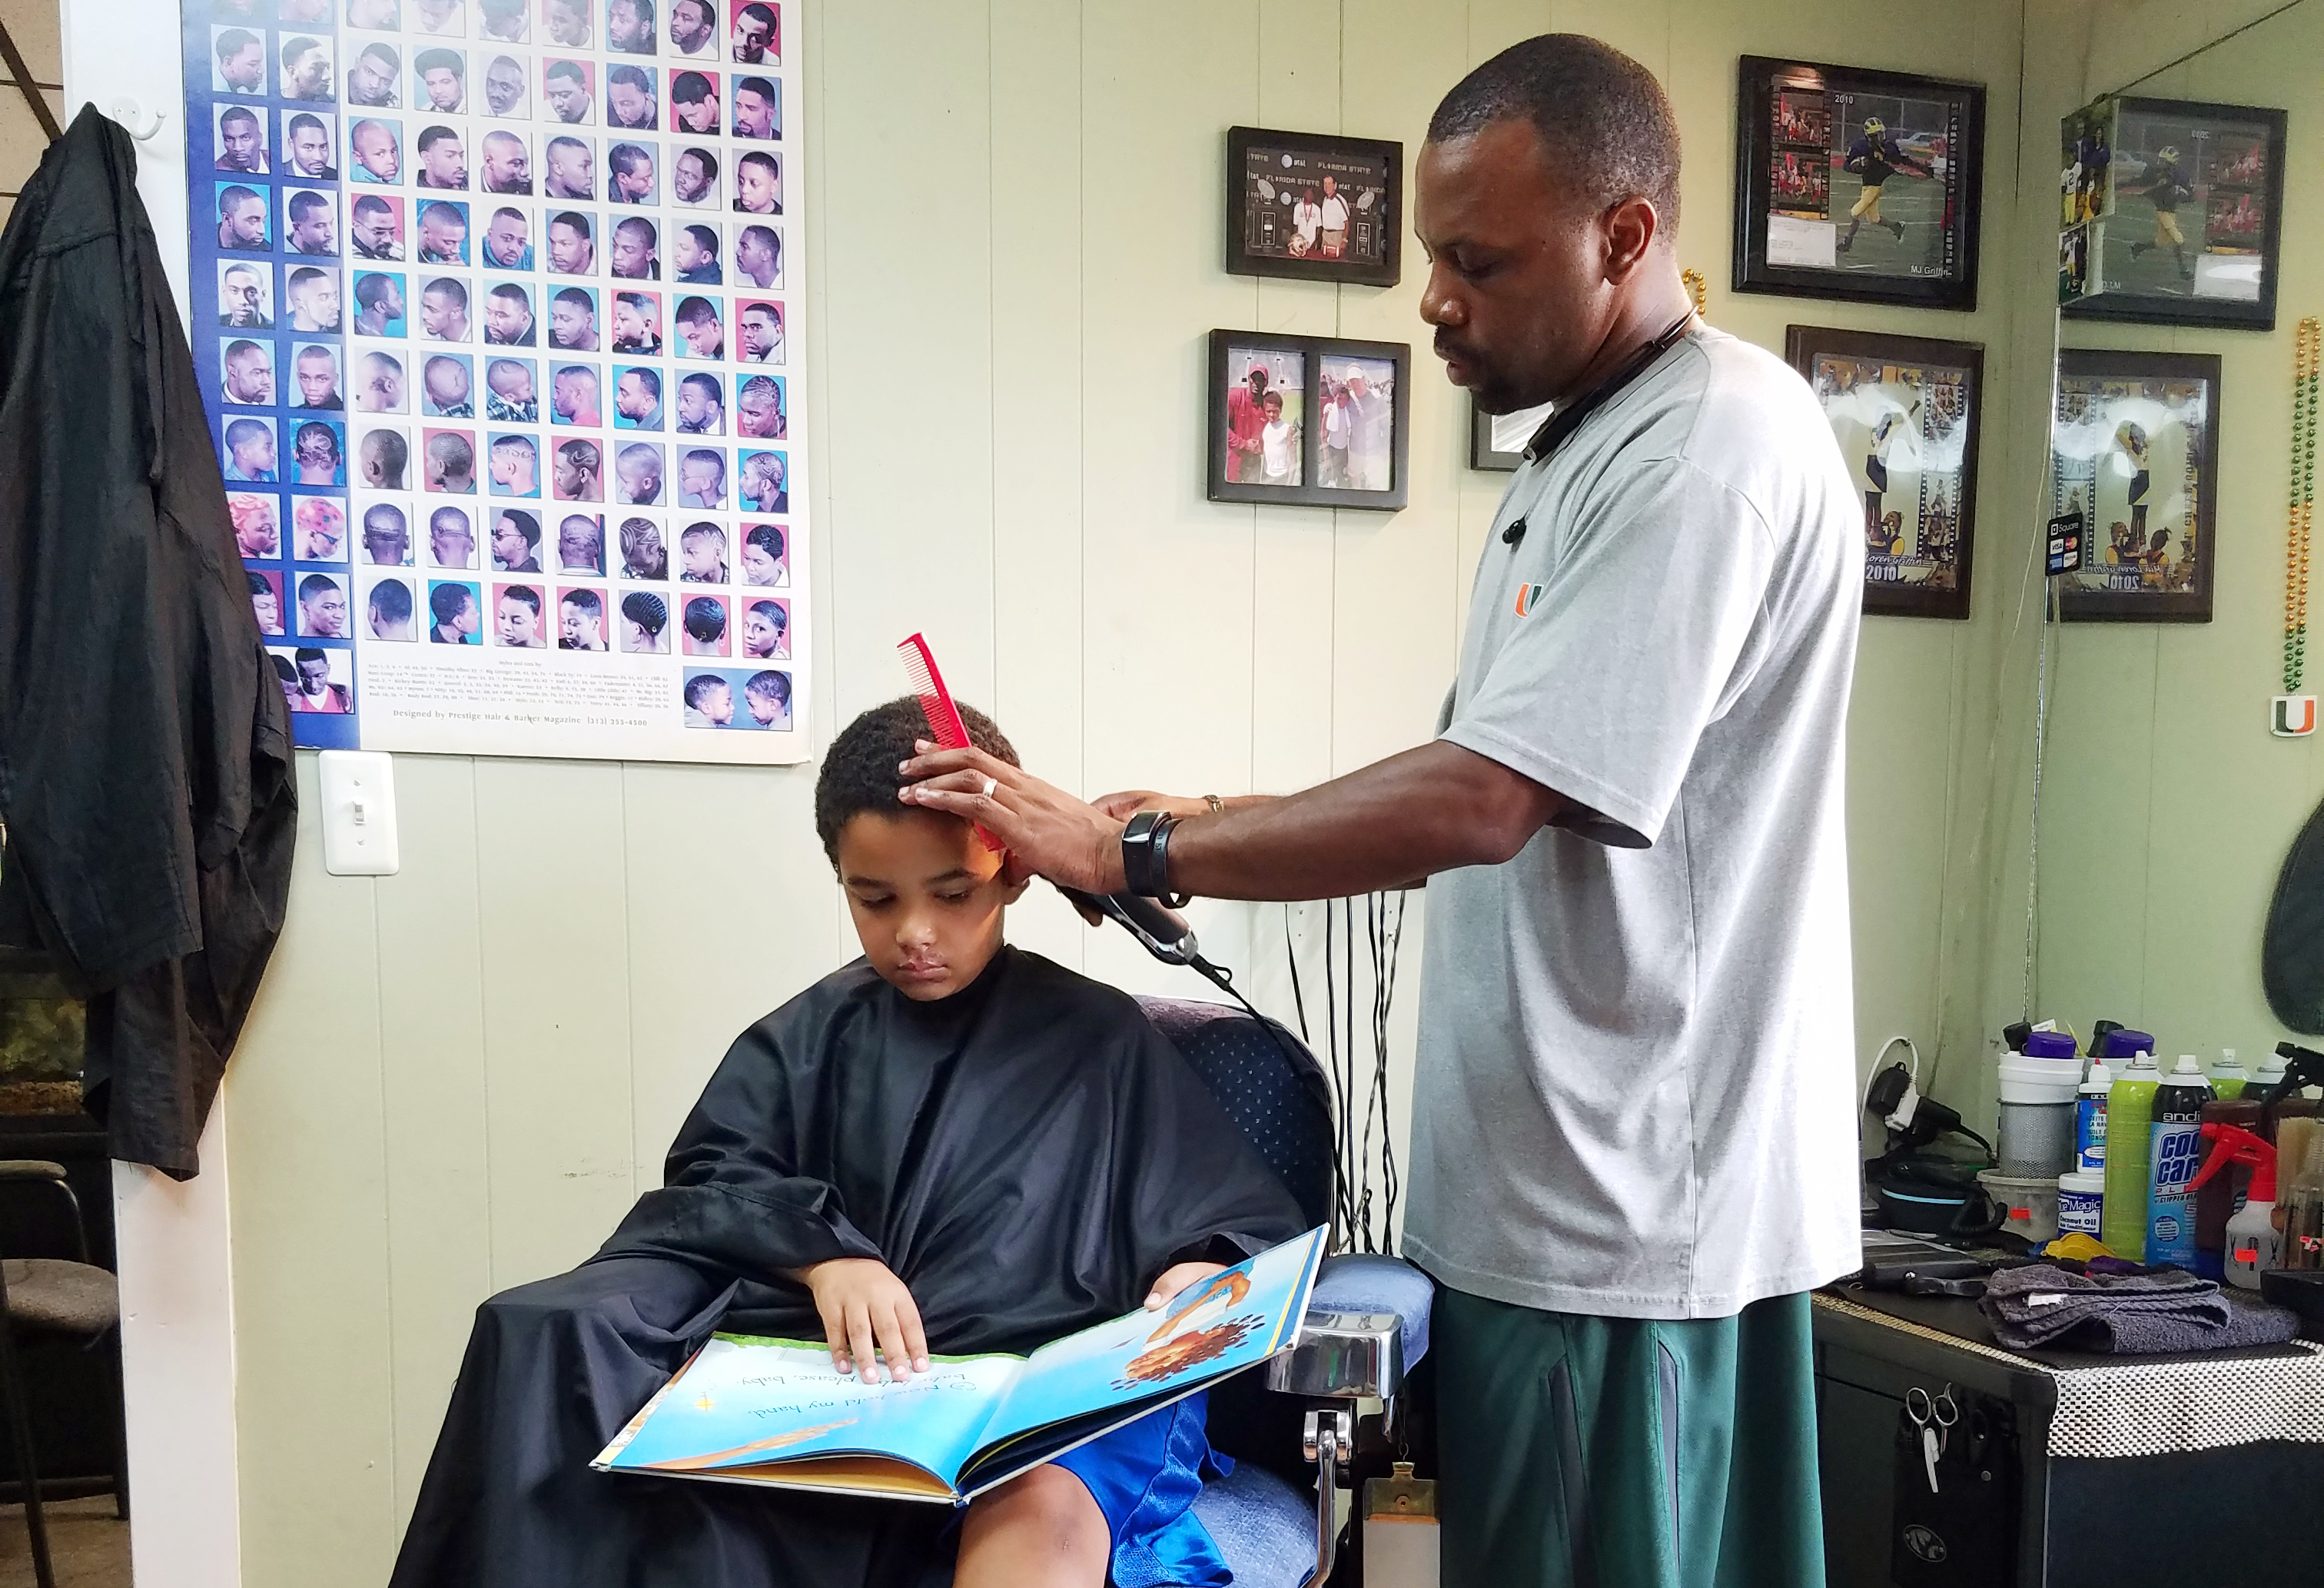 Choose A Book And Read To Your Barber, He'll Take A Little Money Off The Top